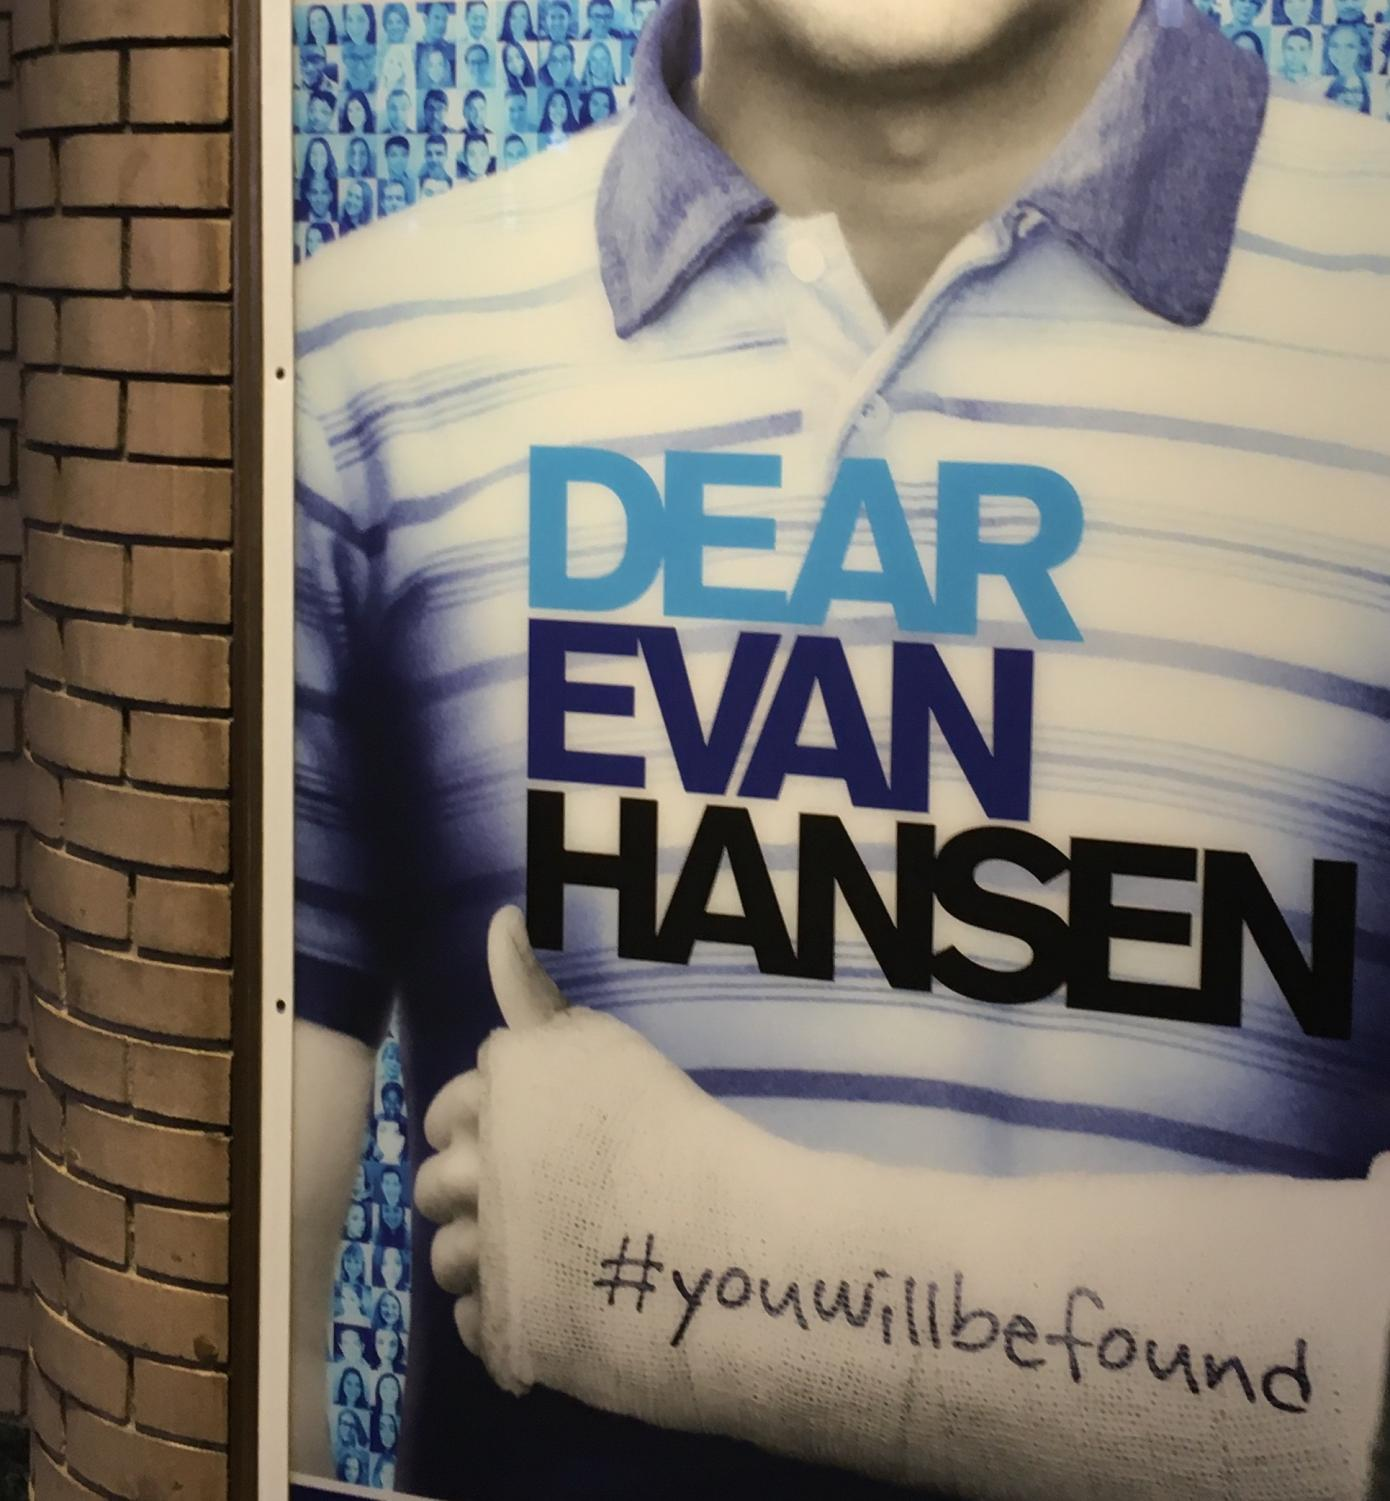 Noah Galvin, who now plays lead Evan Hansen, will be departing from the musical in February 2018.